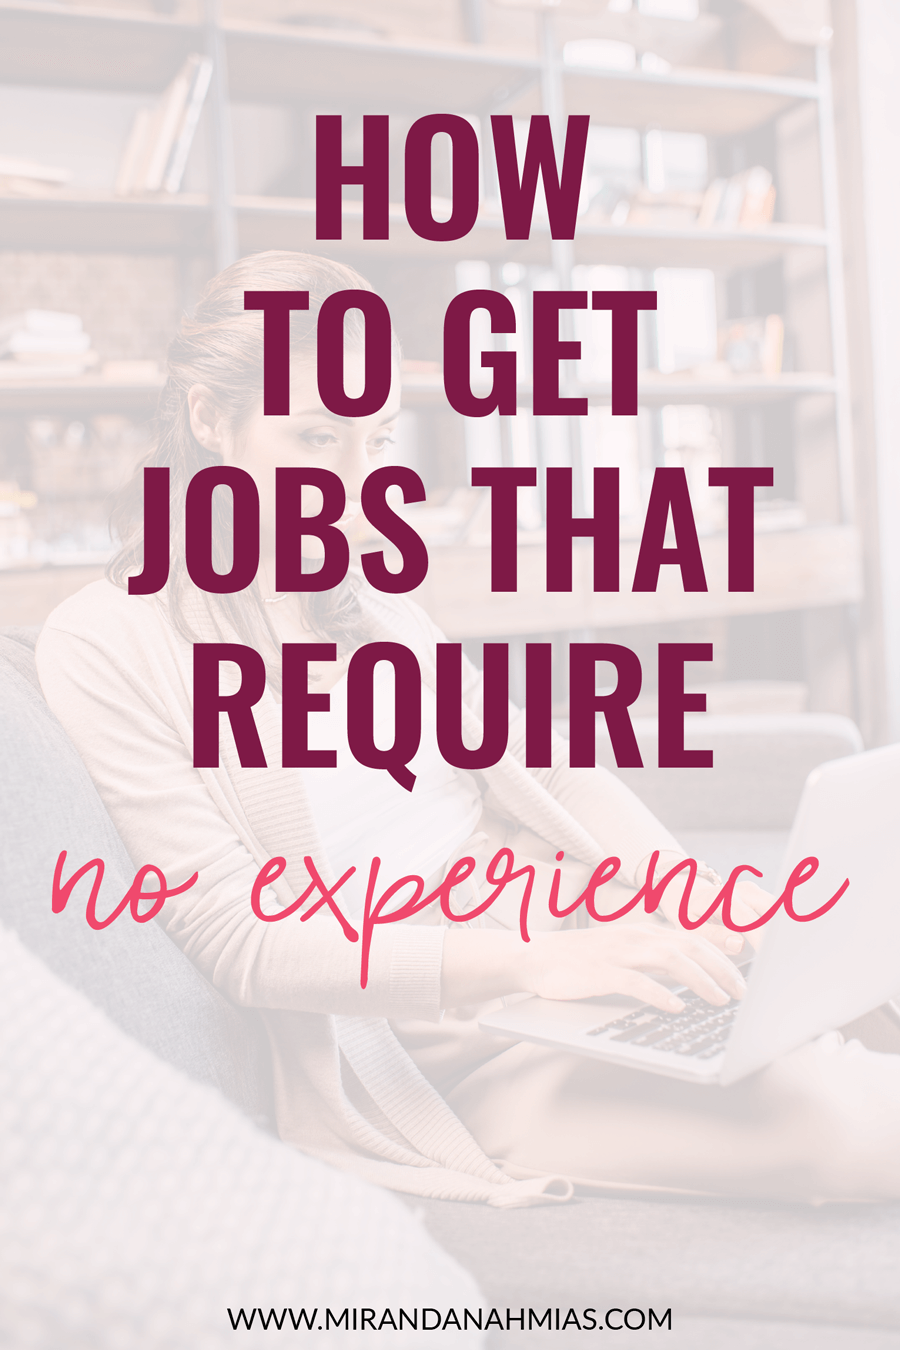 Thinking about starting your own online business but have no experience? Don't worry! Here are 3 ways to get jobs that require NO experience | Miranda Nahmias & Co. — Systematic Marketing for Female Online Service Providers